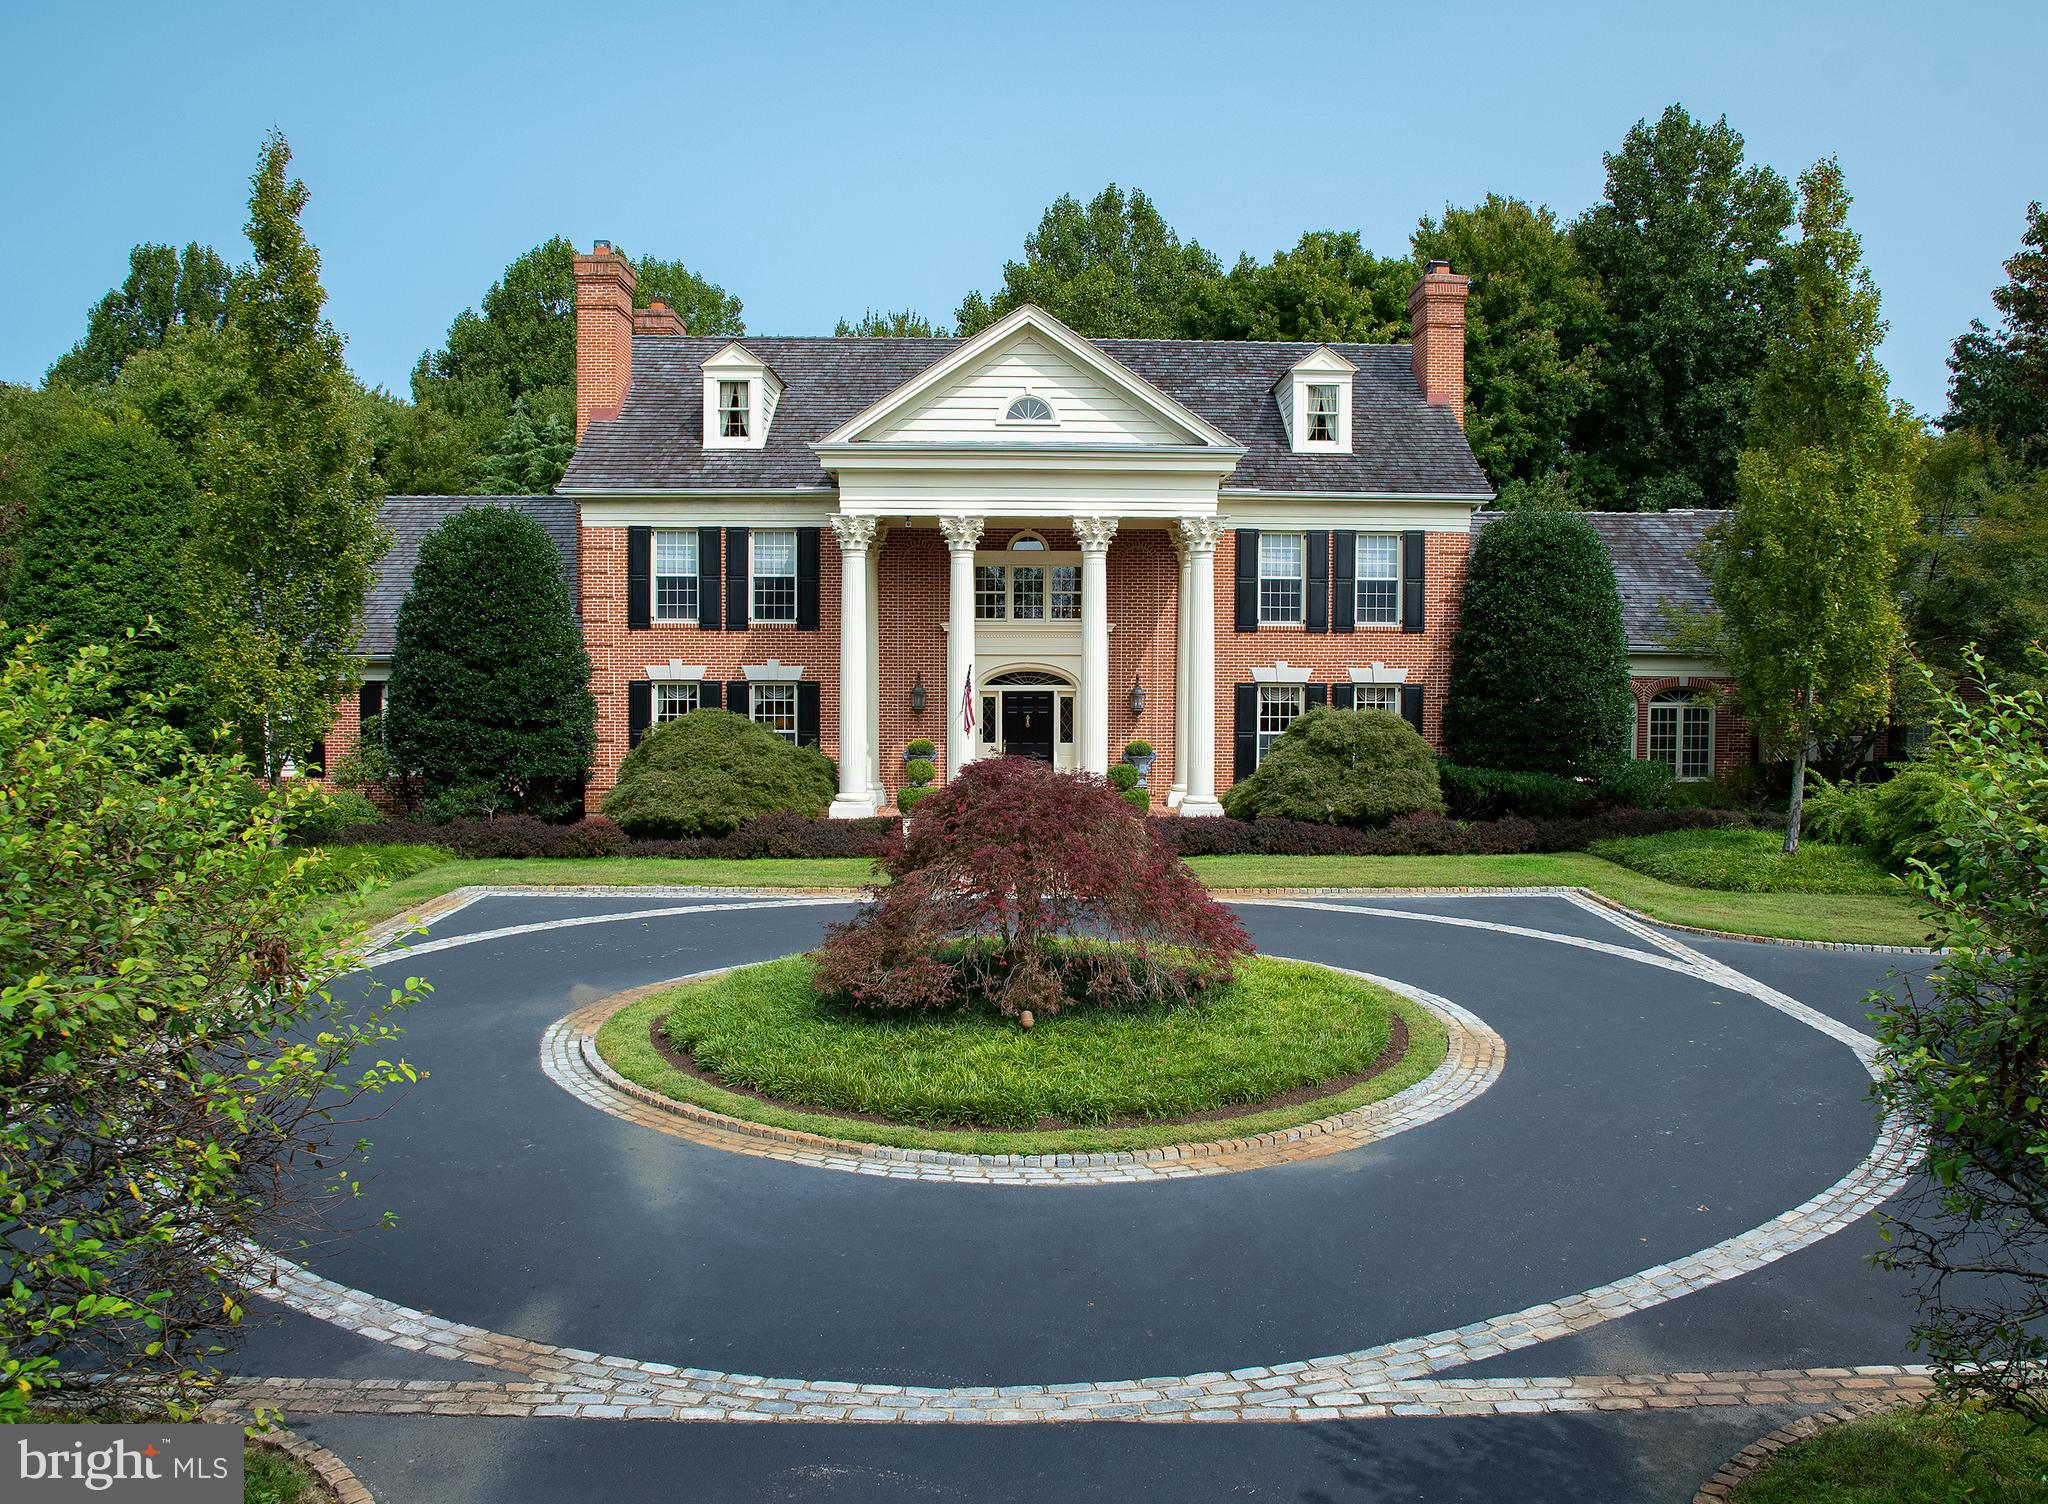 """This magnificent brick home, with its distinctive Georgian architecture designed by Ann Capron, welcomes the visitor with its circular drive, gated entry, and Gale Nurseries-award winning and beautifully landscaped, 5.4-acre grounds in the heart of Willistown. With 5 bedrooms, 7 full baths and 2 powder rooms, and 6 fireplaces, this homes fortress-like features include concrete walls and double dry walls for sound reduction, 9- to 12-foot ceilings throughout, impressive millwork and wood floors. The stunning Hunt Room, home theater, gorgeous outdoor pool, and 3,200-bottle wine cellar are just a few of its overflowing amenities. With more than 12,000 square footage and building materials that in today's dollars would exceed $5 million, 853 Providence Road is truly one of a kind. A soaring, two-story foyer welcomes you into expansive living spaces with graceful touches including 4-layer custom moldings, arched doorways, and beautiful fireplaces. The first level features a formal living room and dining room, chefs quality kitchen and adjoining dining area, sunroom with 12-foot coffered ceilings, and a truly unique hunt room with 20-foot beamed ceilings. The first floor also has a main suite with bed and bath, home office, two lovely powder rooms, and large laundry. On the second level, there is an in-law/guest suite above the garage, as well as three generously sized bedrooms, each with their own en-suite bath. A walk-up, floored attic provides an additional 2,000+ square feet, convertible to living space. With two floors of formal, traditional rooms, the Garden Level offers true, eye-catching flair, with oak flooring, French-style café, and hidden second entrance to the """"ancient"""" wine cellar. This level has a second full kitchen for easy entertaining (the level leads directly to the patio and pool). You'll also find a billiards room with a 25-foot granite-top bar with brass foot rail, and a host of special antiques, including a phone booth with working phone and a Post"""